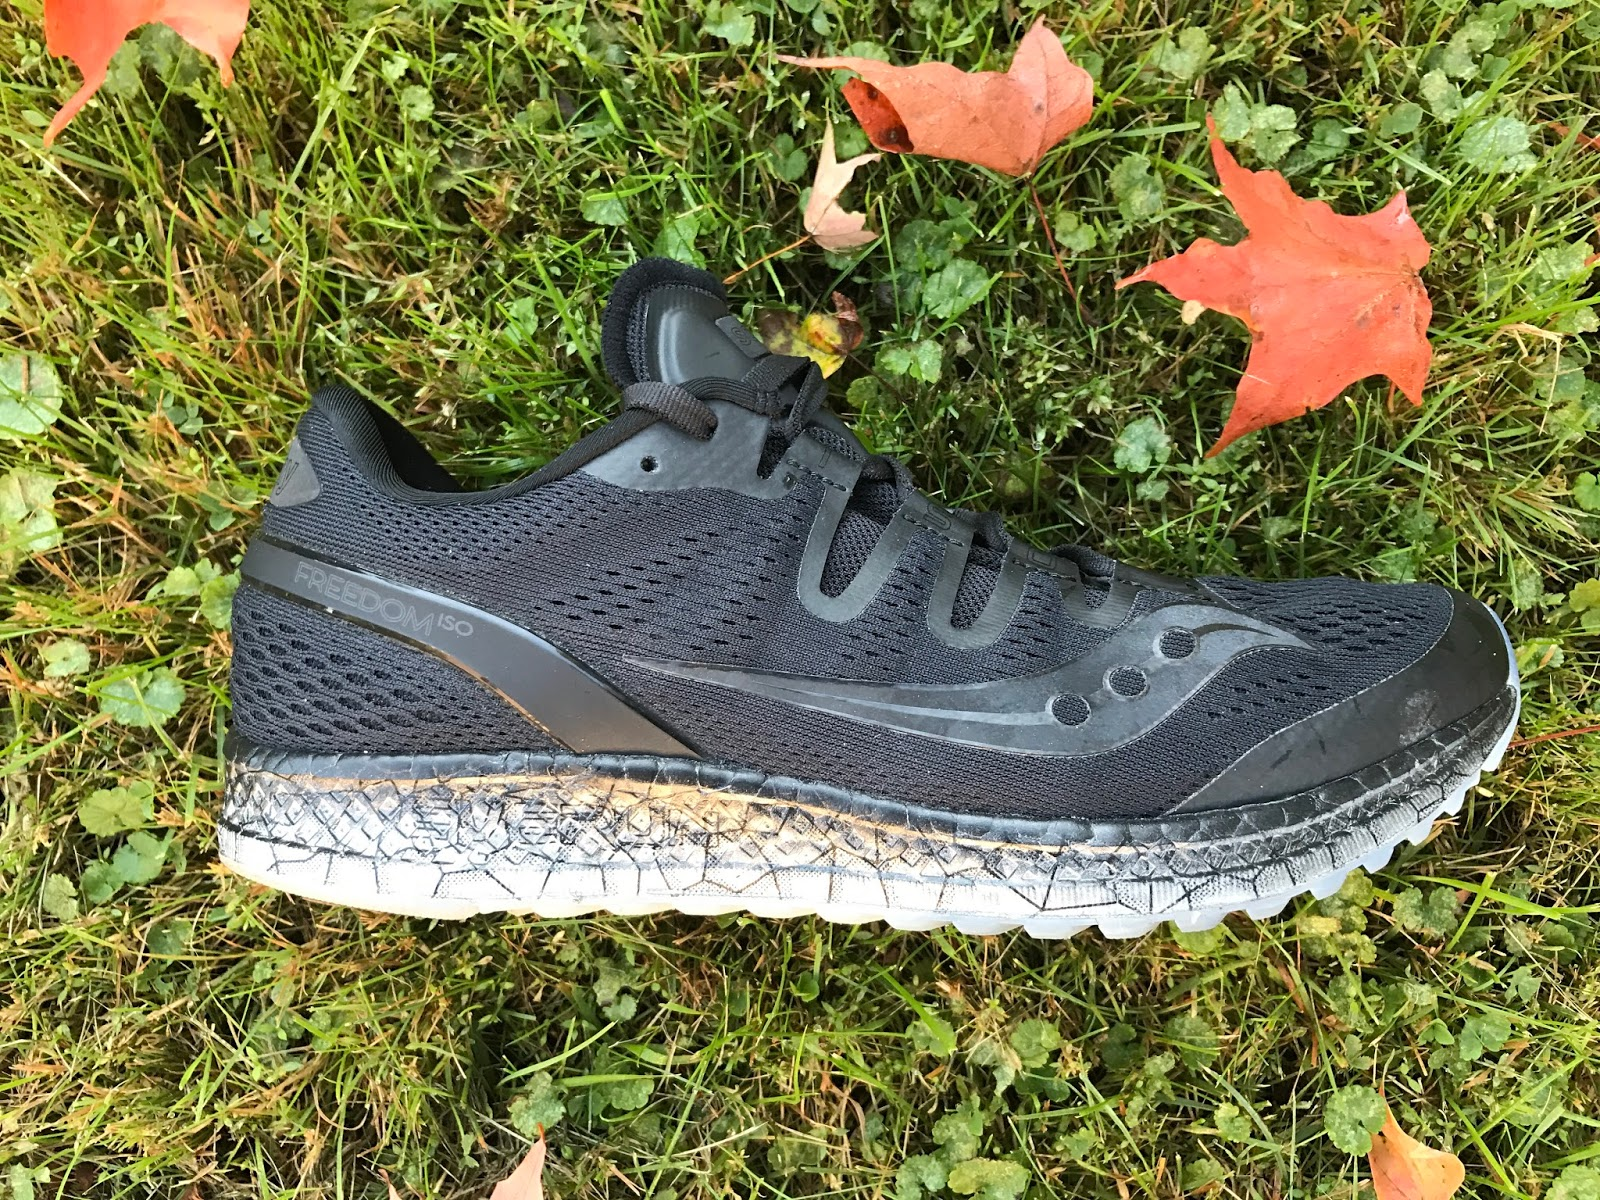 road trail run in depth altra running escalante review fire patrick the escalante is a lighter more flexible shoe than the dom a slightly softer feel underfoot and a more fluid transition during foot